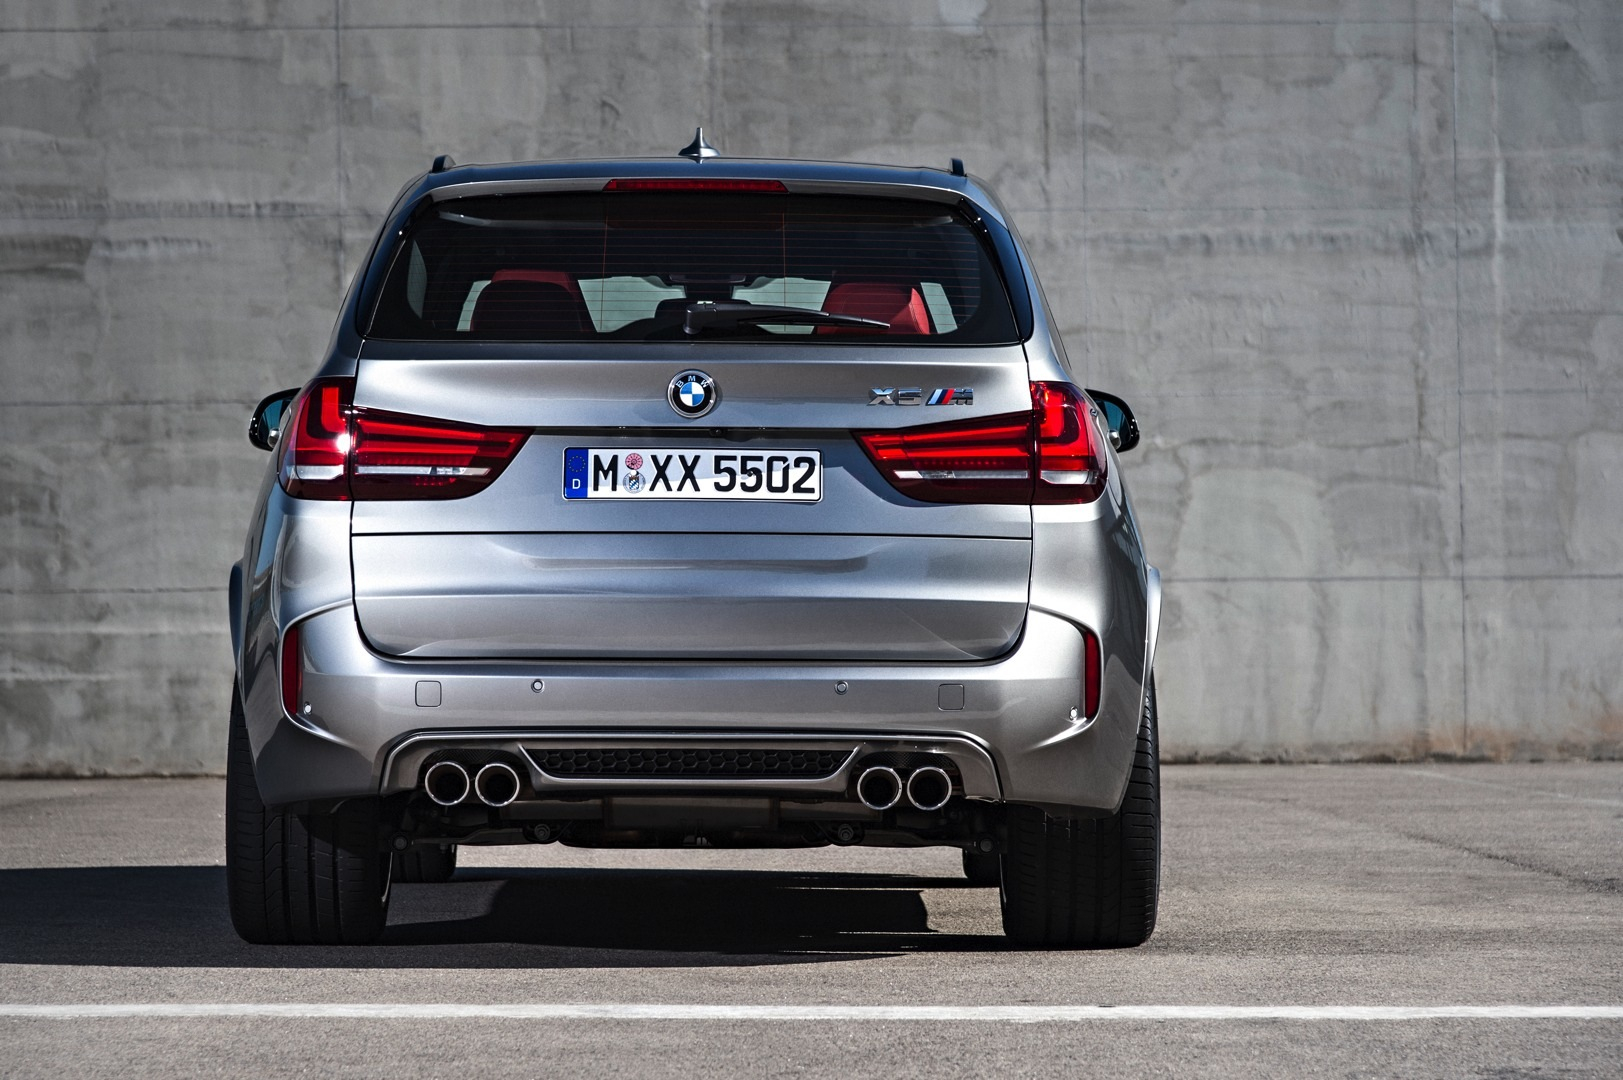 2015 Bmw X5 M And X6 M Unveiled With 575 Hp And 8 Speed